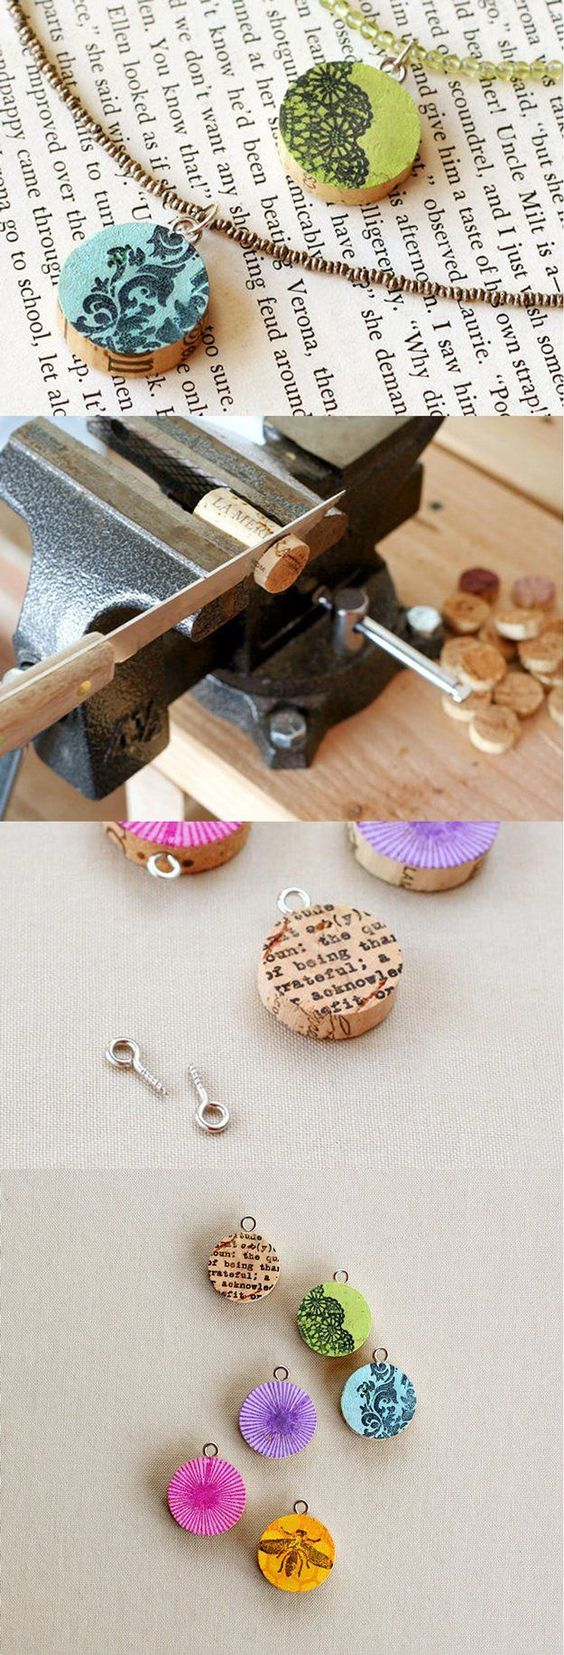 43 More DIY Wine Cork Crafts Ideas DIYReady.com | Easy DIY Crafts, Fun Projects, & DIY Craft Ideas For Kids & Adults